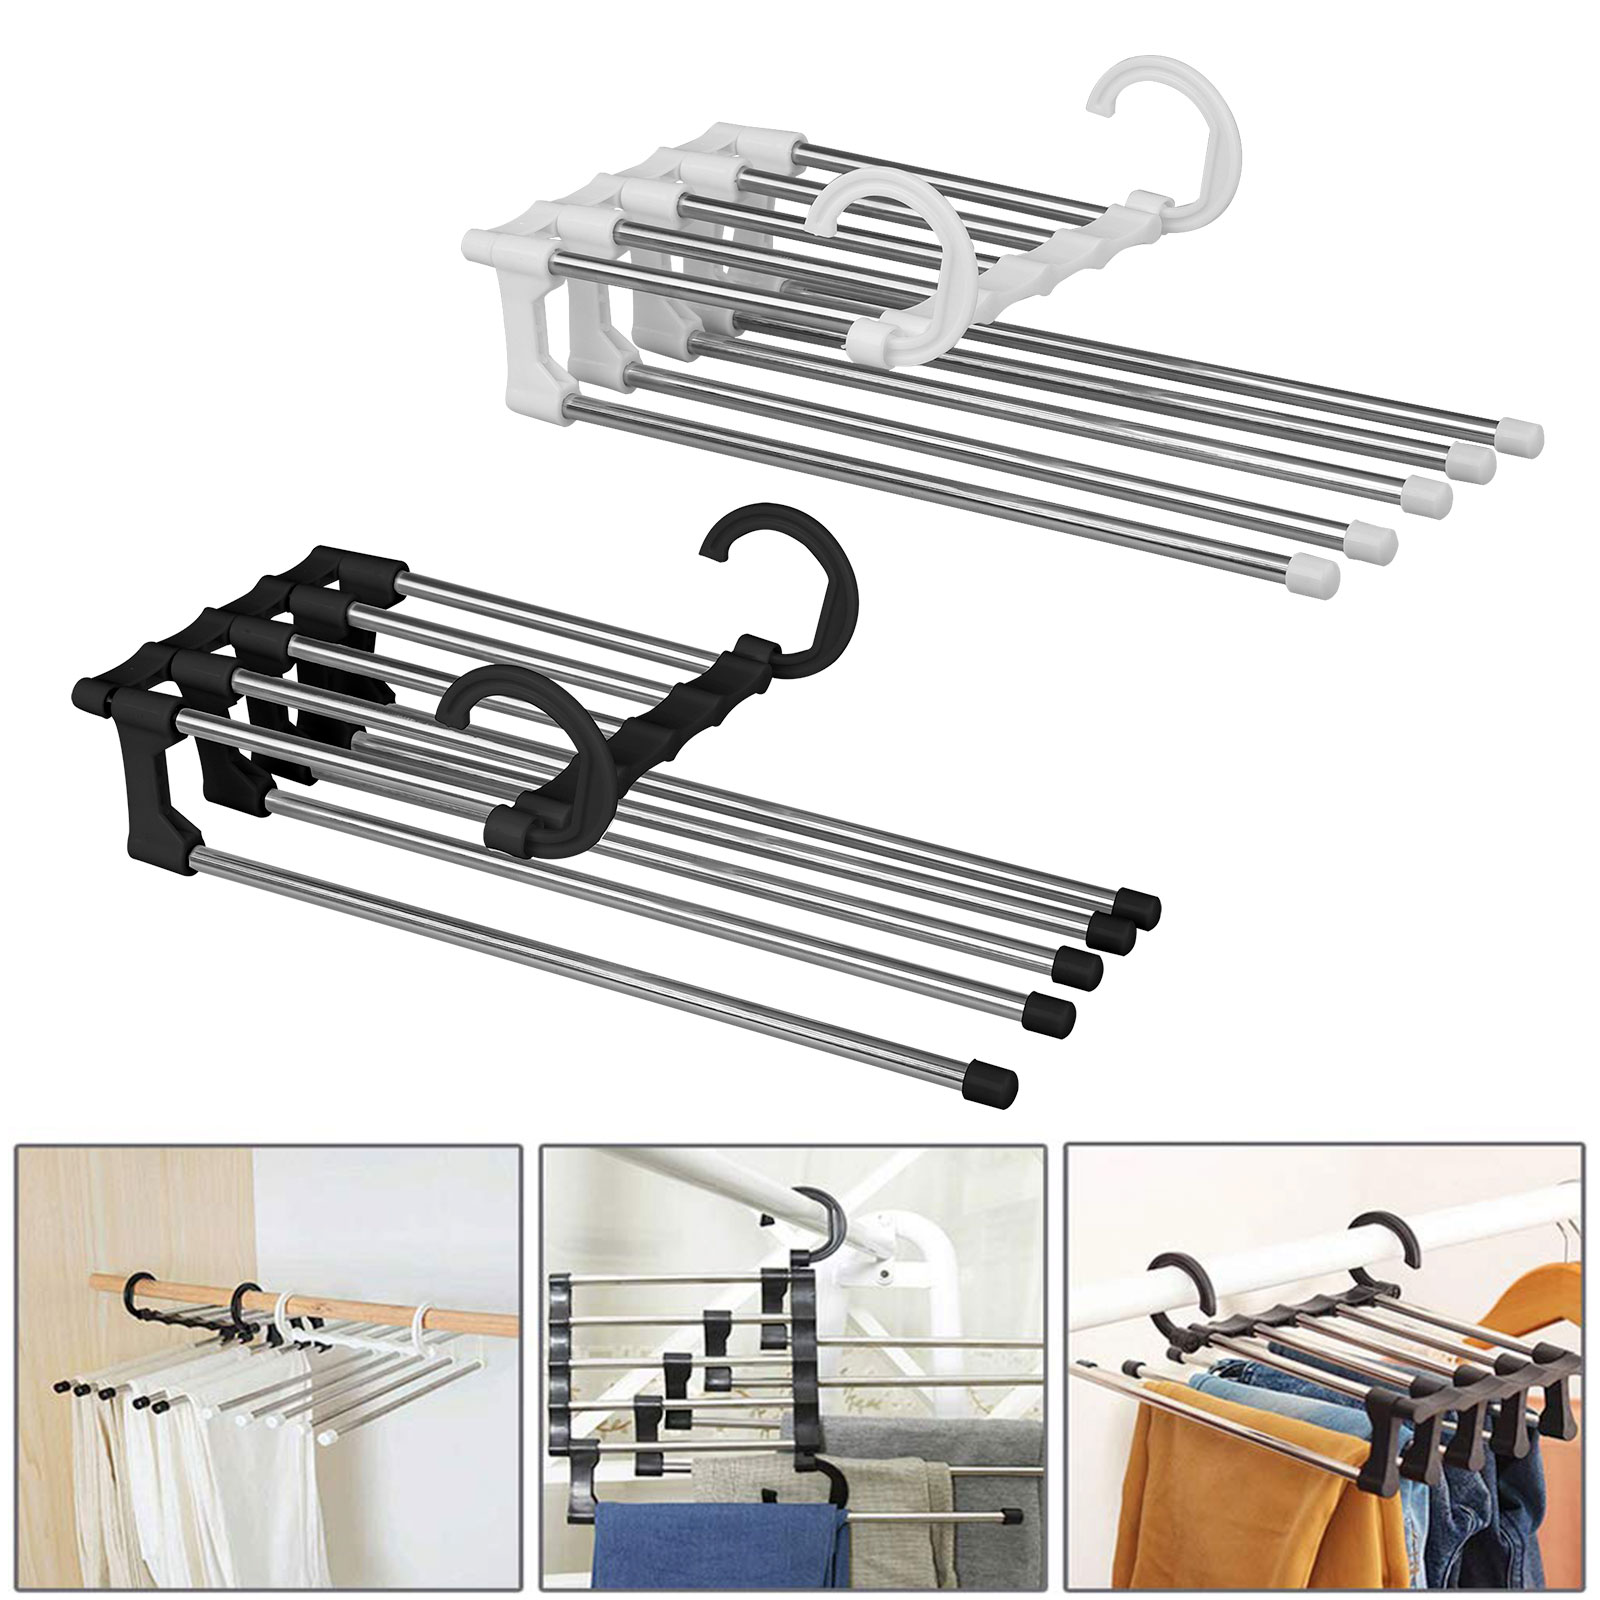 5 Layer Clothes Hanger Laundry Space Saving Rack Ties Scarf Trouser Organizers